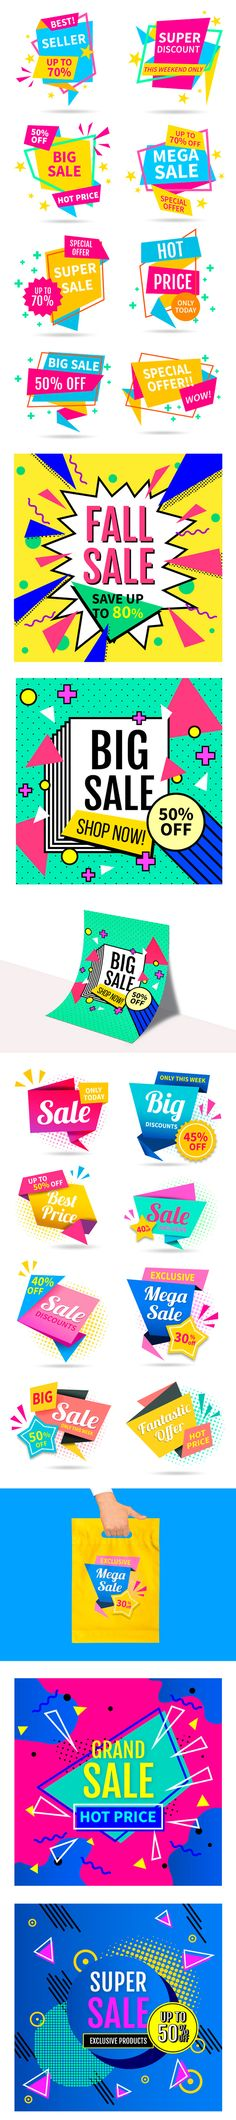 Free Colorful Sales Vector Set     #freevector #freevectorgraphics #freebies #vectorelements #vectorgraphics #vectoricons